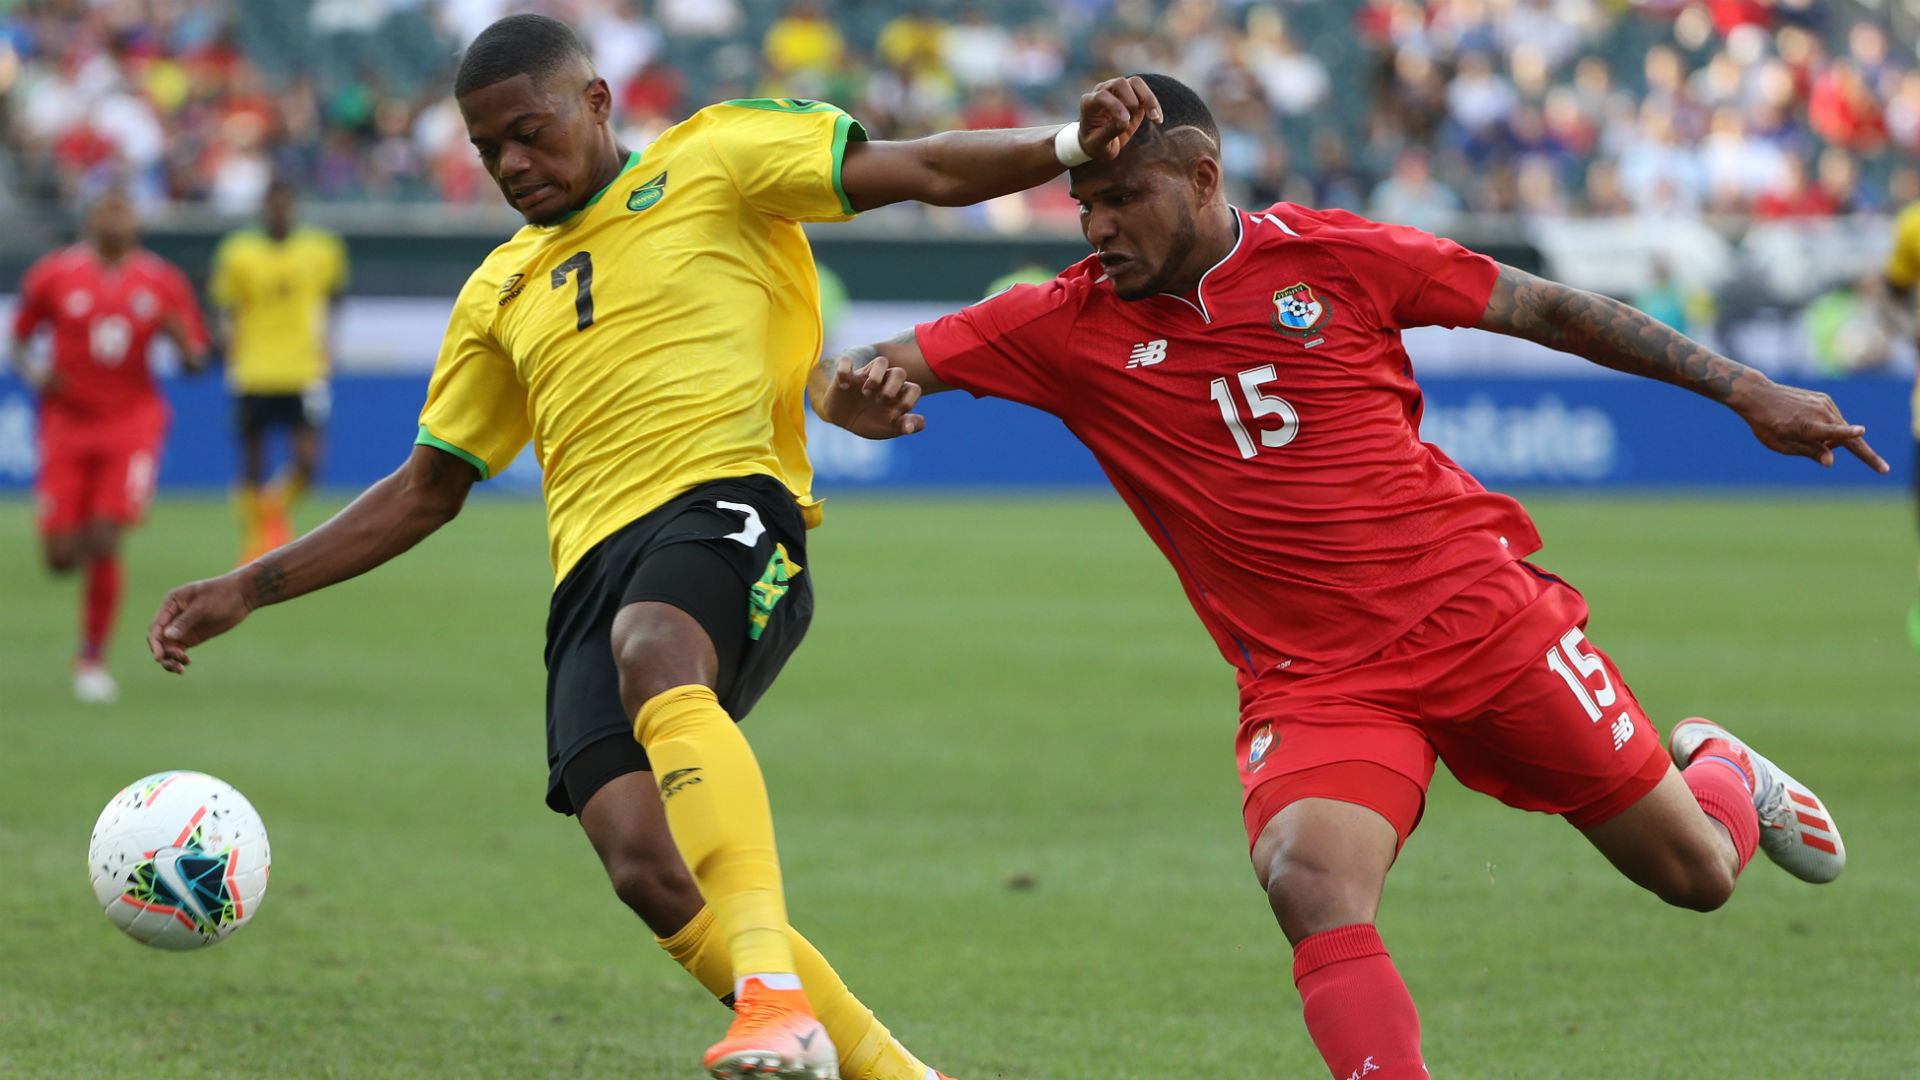 How to Watch USA vs Jamaica Gold Cup Online Without Cable